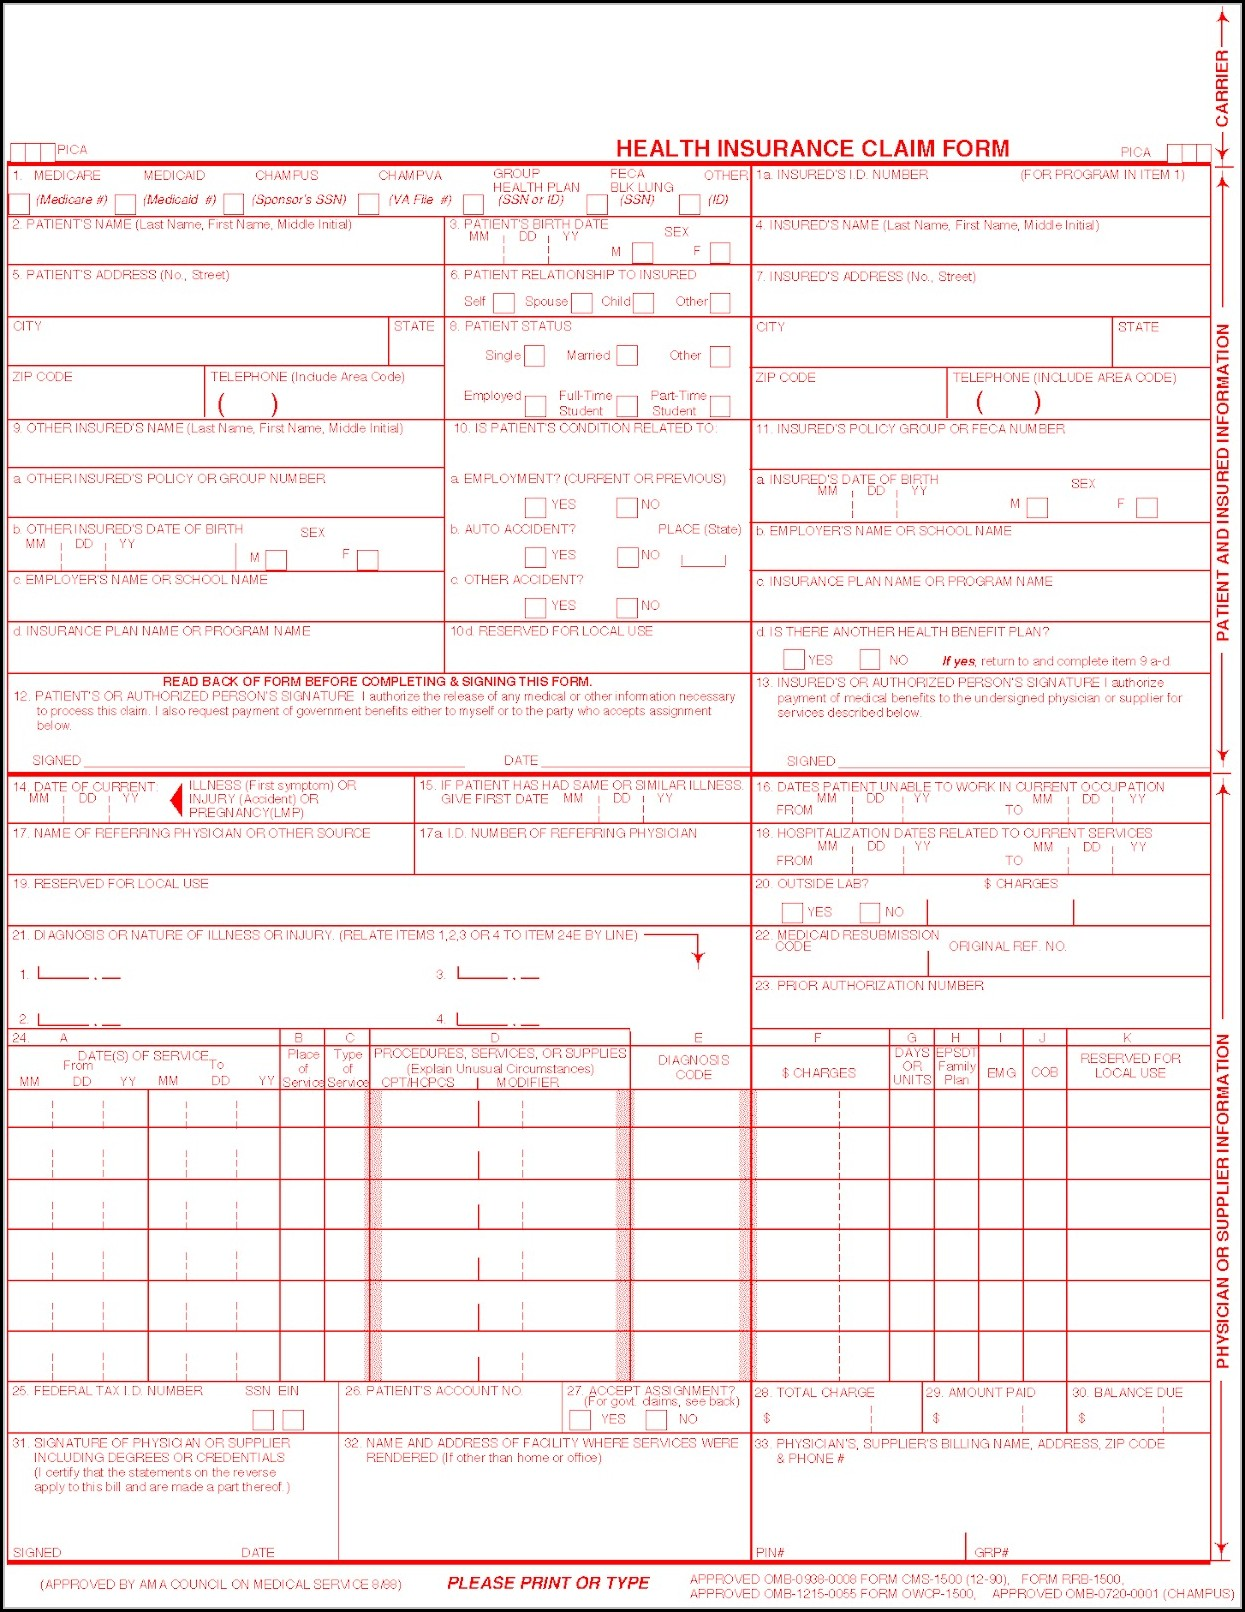 Cms 1500 Claim Form Pdf Free Download